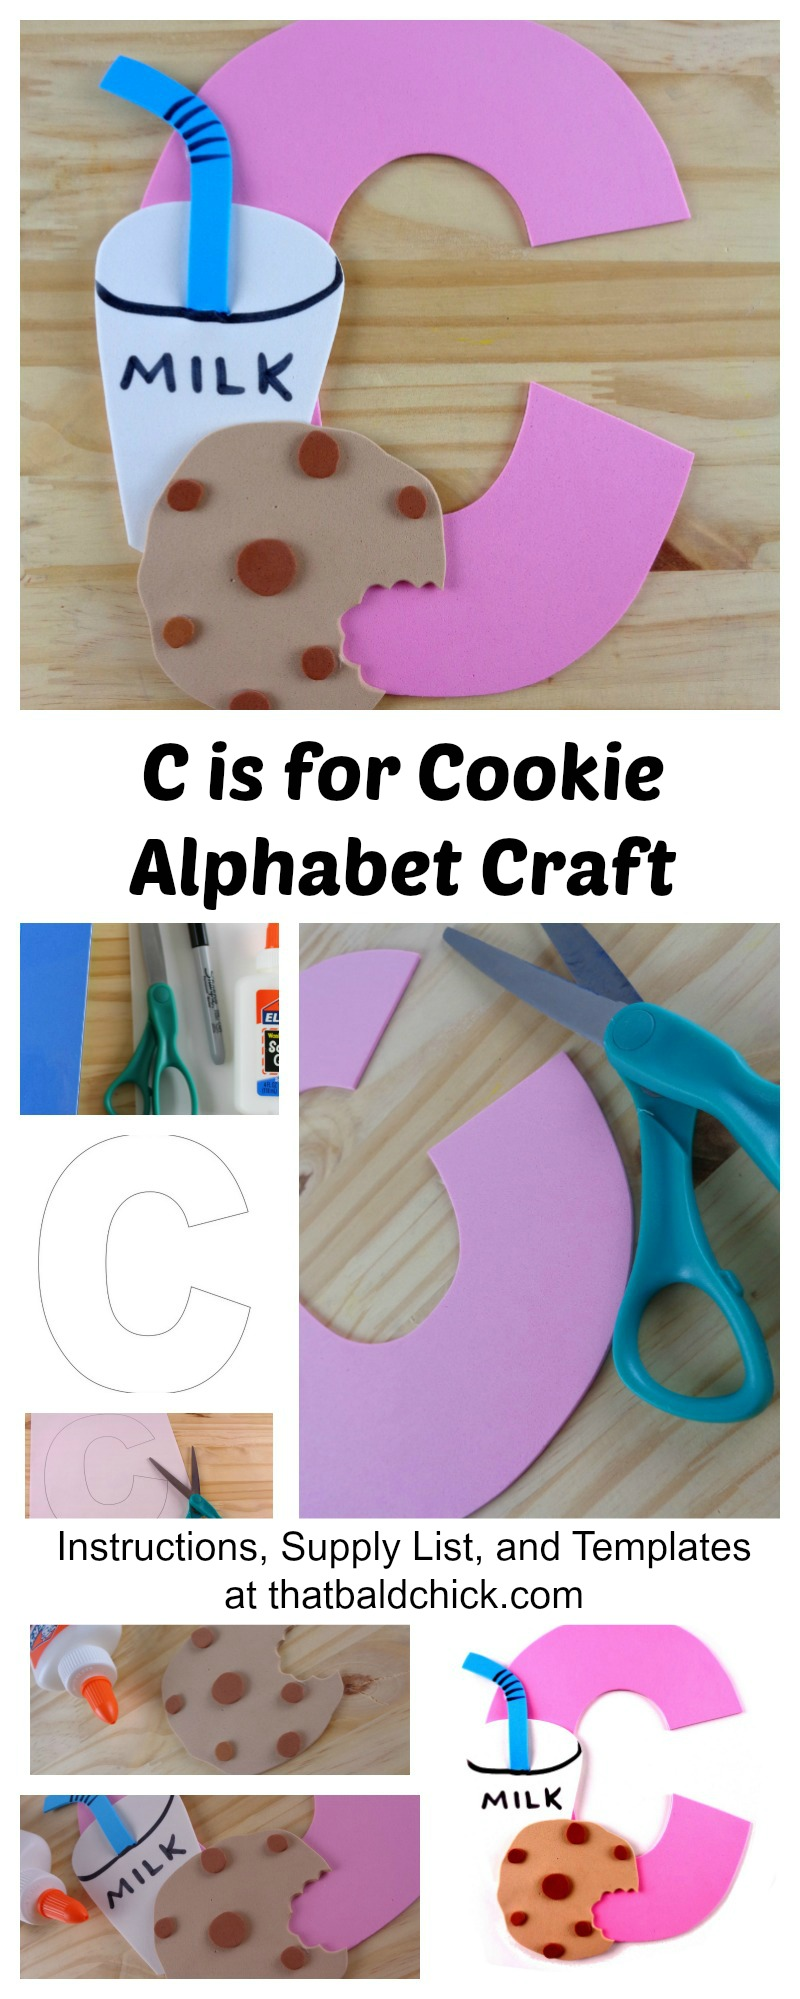 C is for Cookie Alphabet Craft. Instructions, Supply List, and Templates at thatbaldchick.com